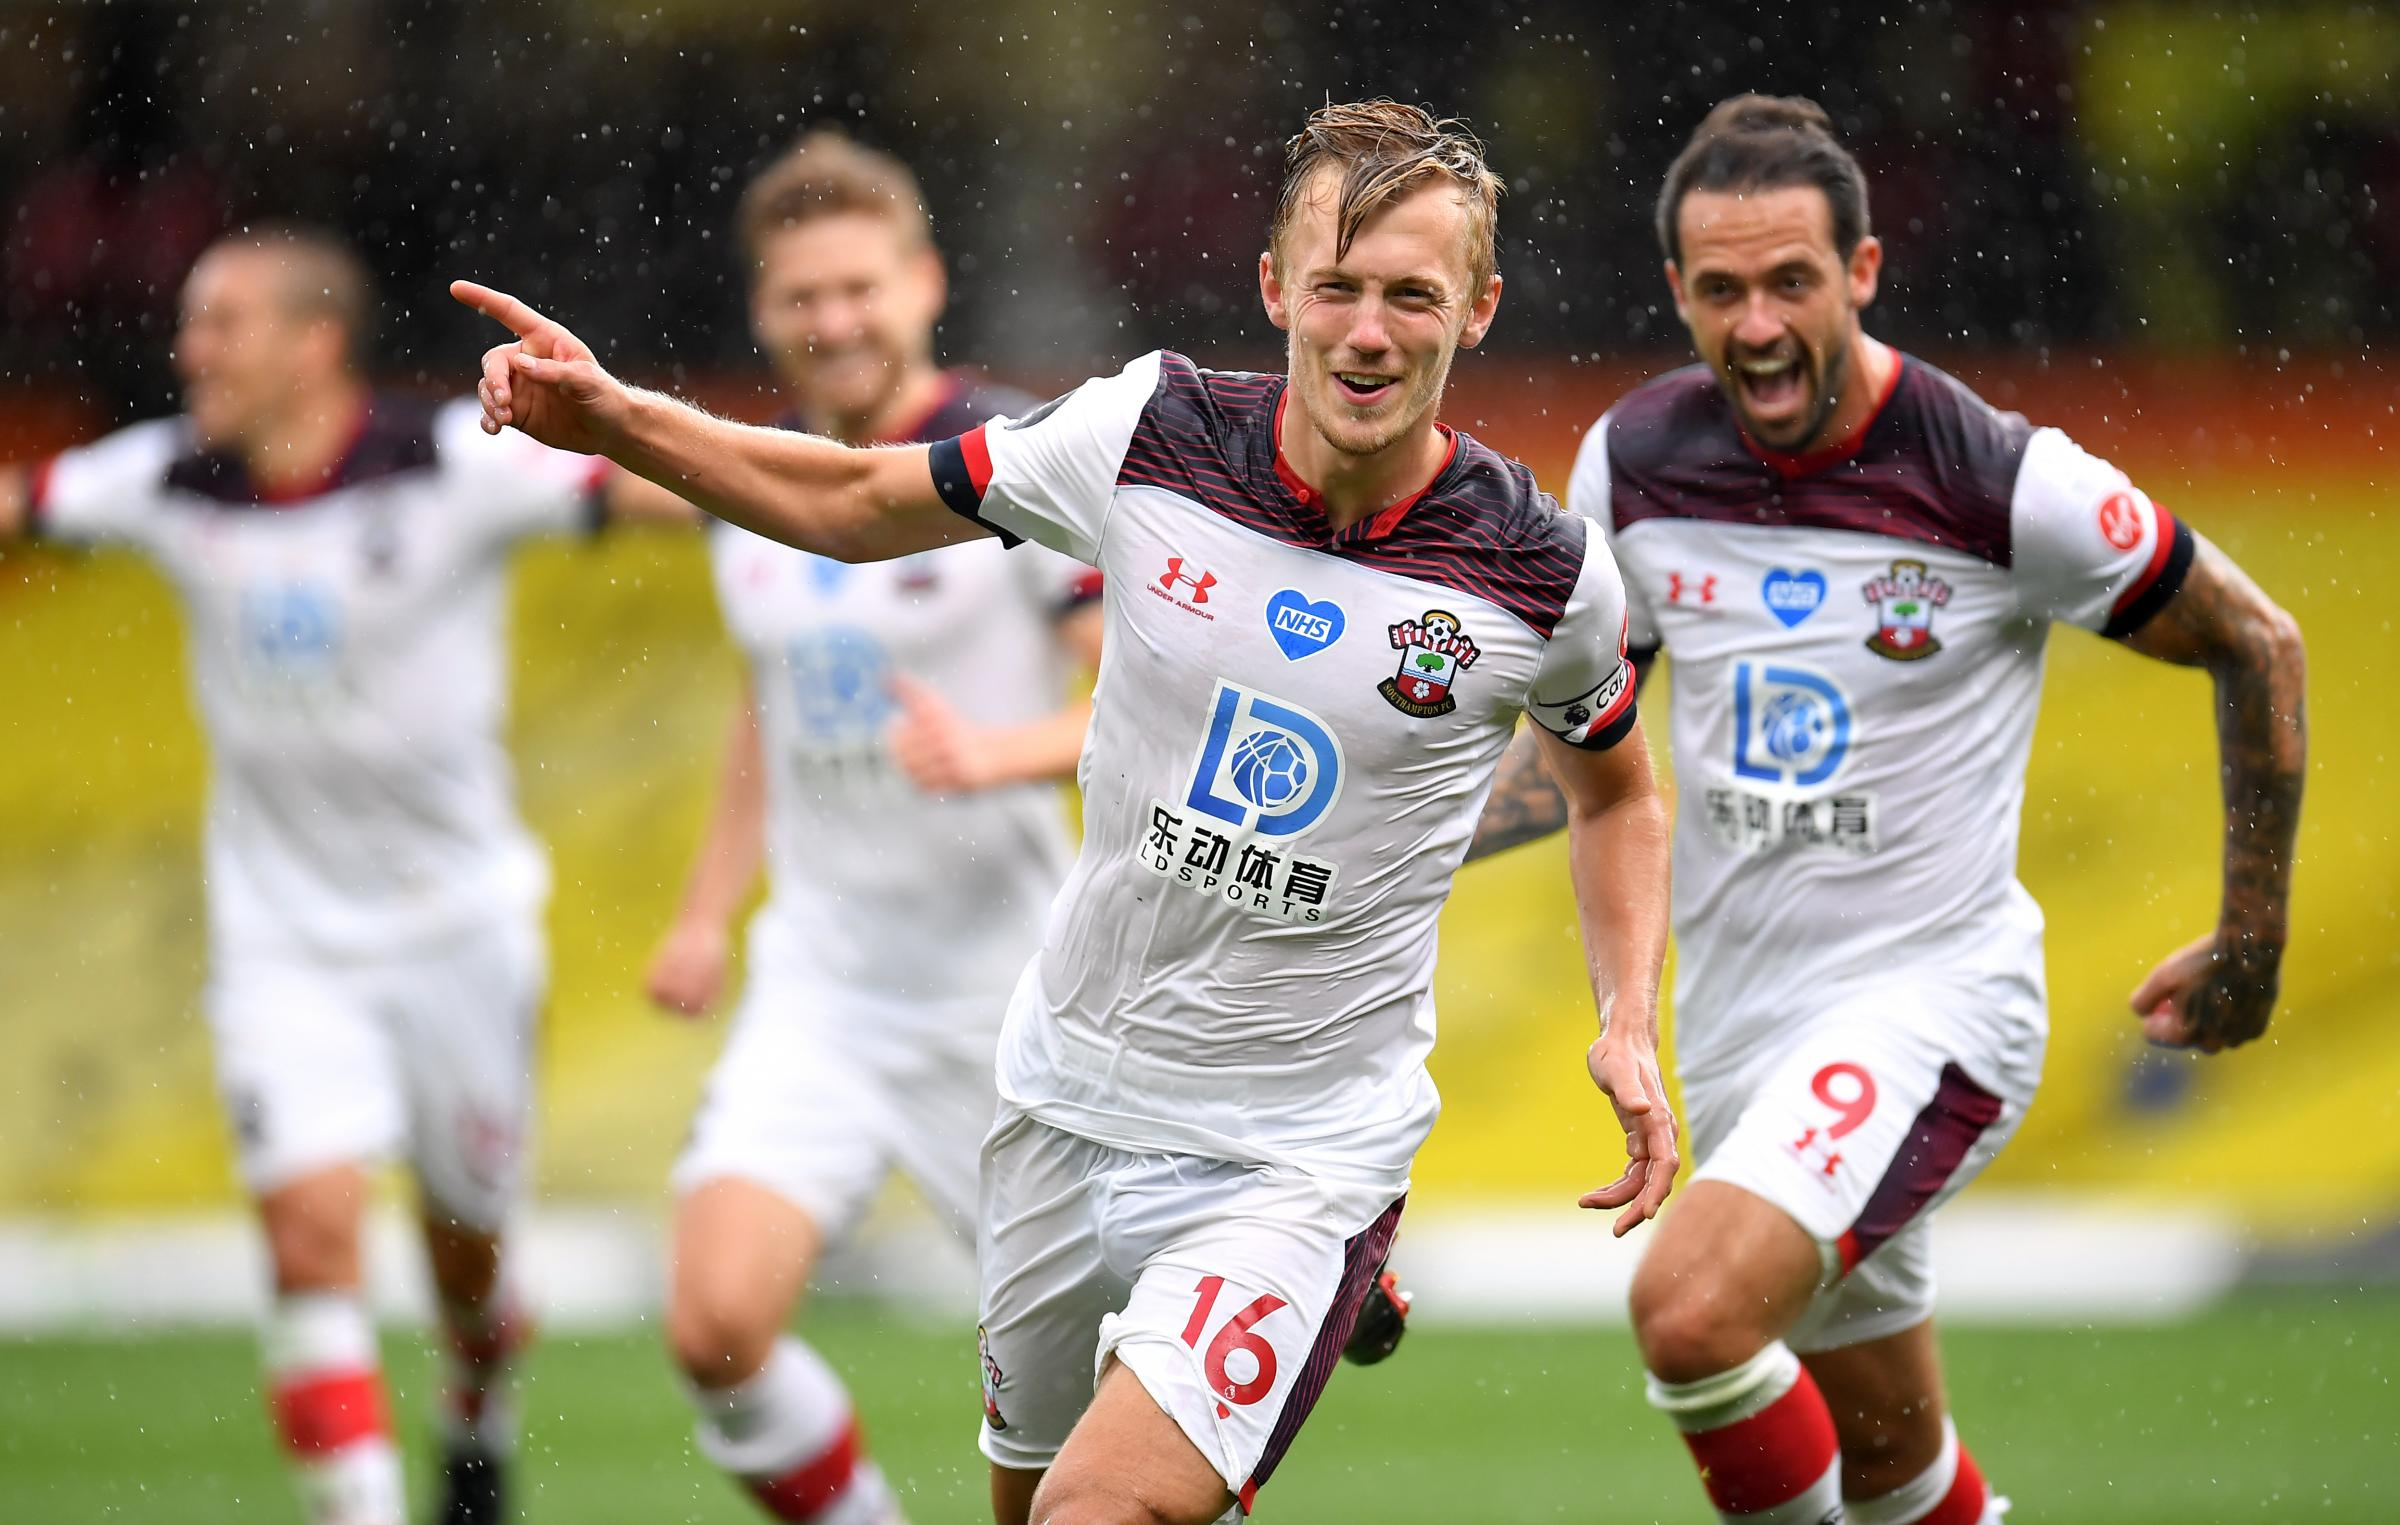 James Ward-Prowse talks being handed the captaincy, Pierre's reaction and Man City